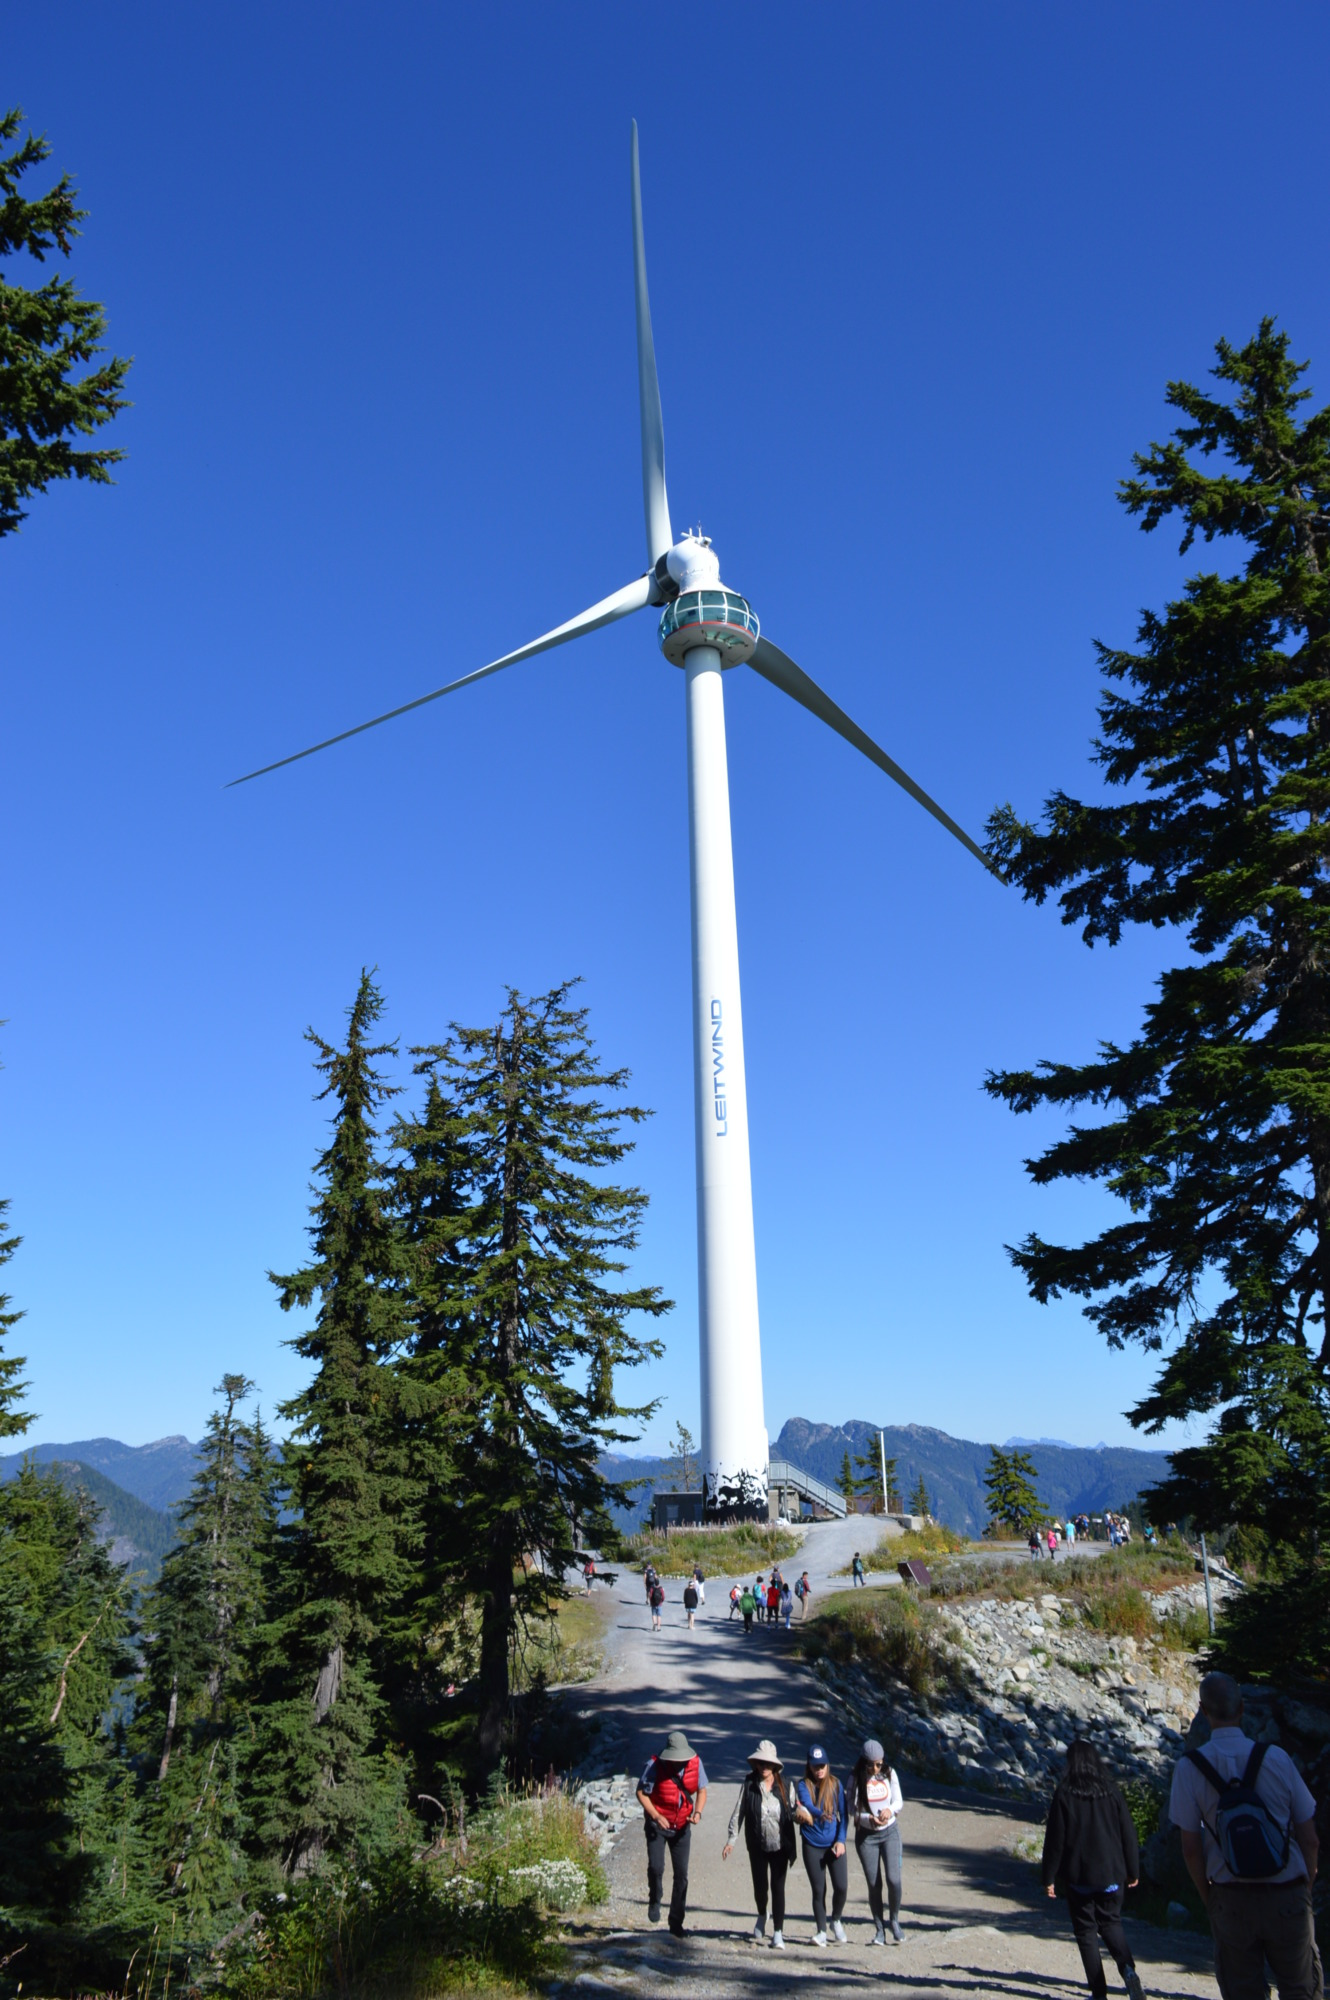 Eye of the wind at Grouse Mountain